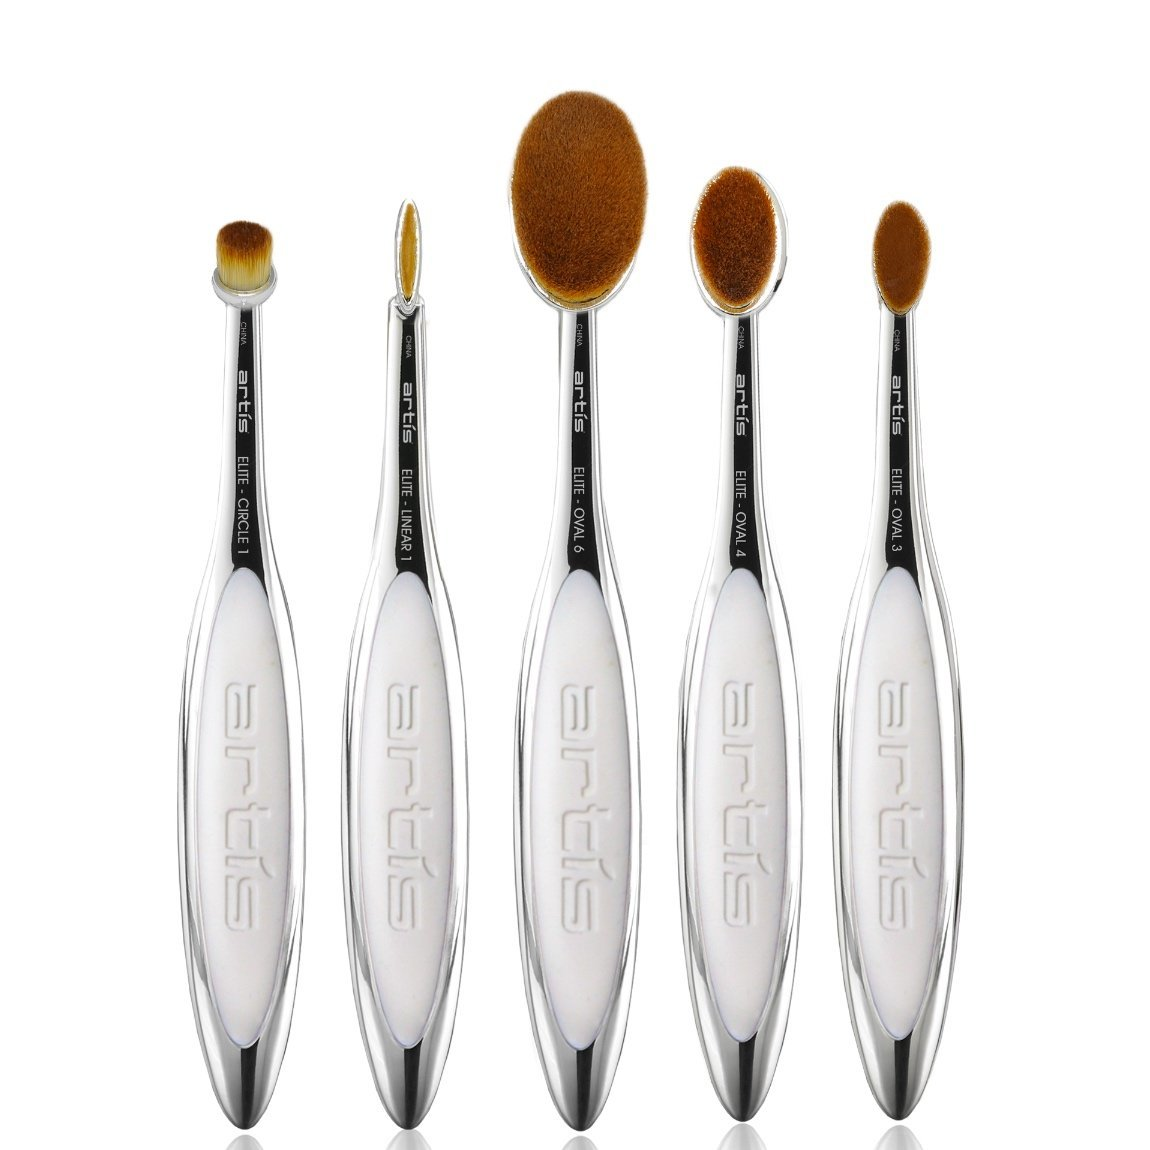 Artis Elite 5 Brush Set Mirror product smear.